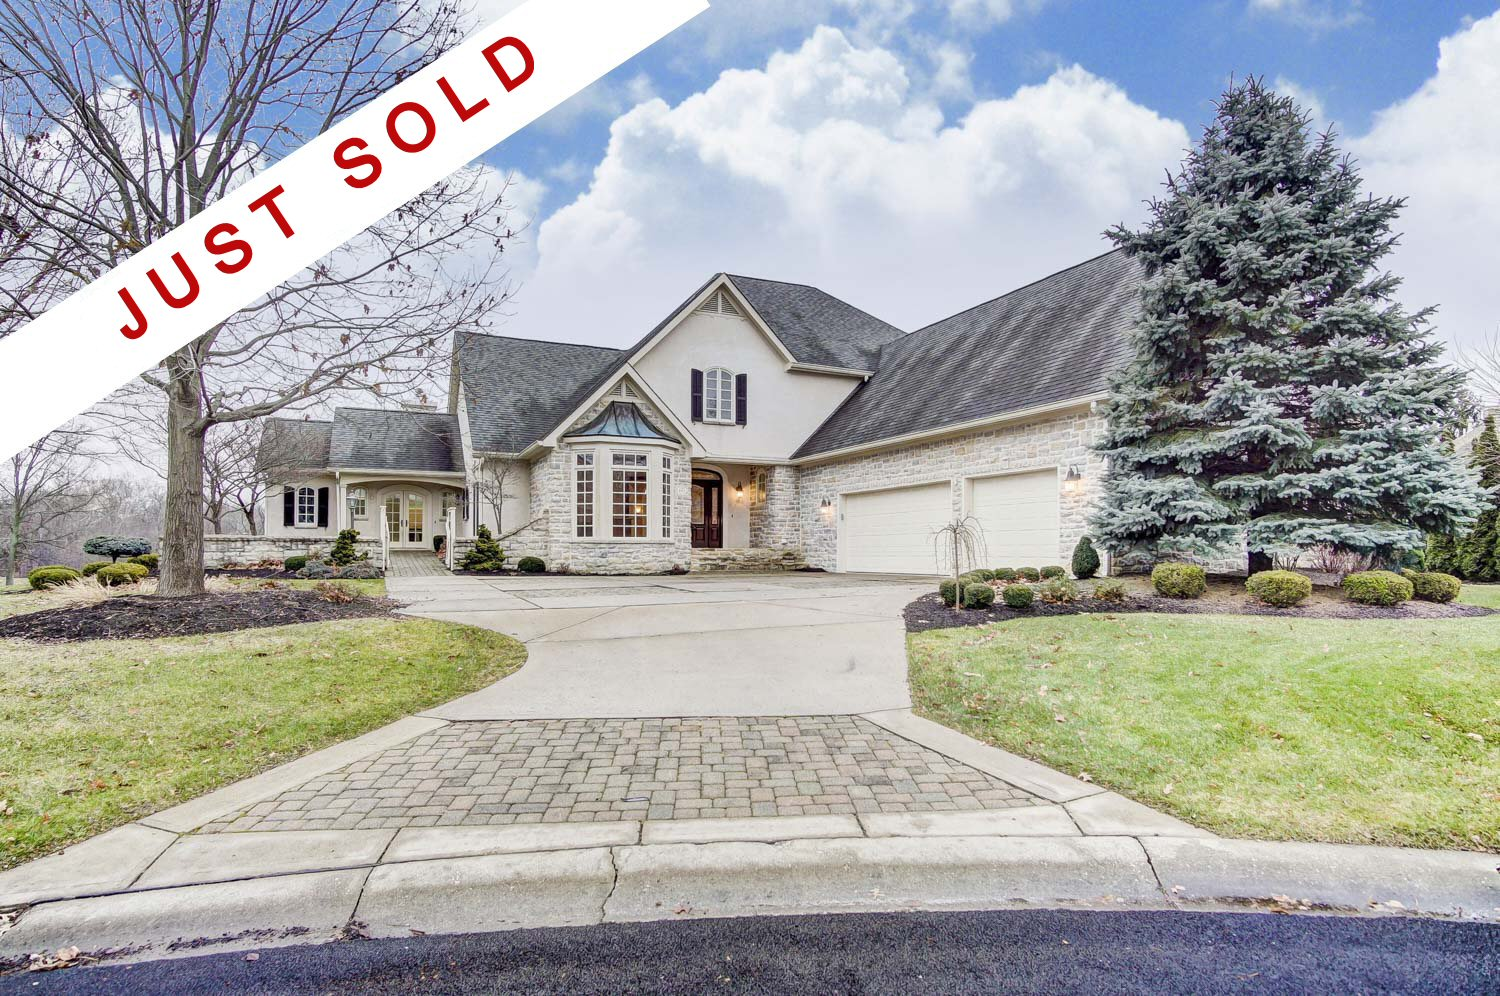 Just Sold this Luxury home in Blacklick, OH along hole 3 on Jefferson Country Club